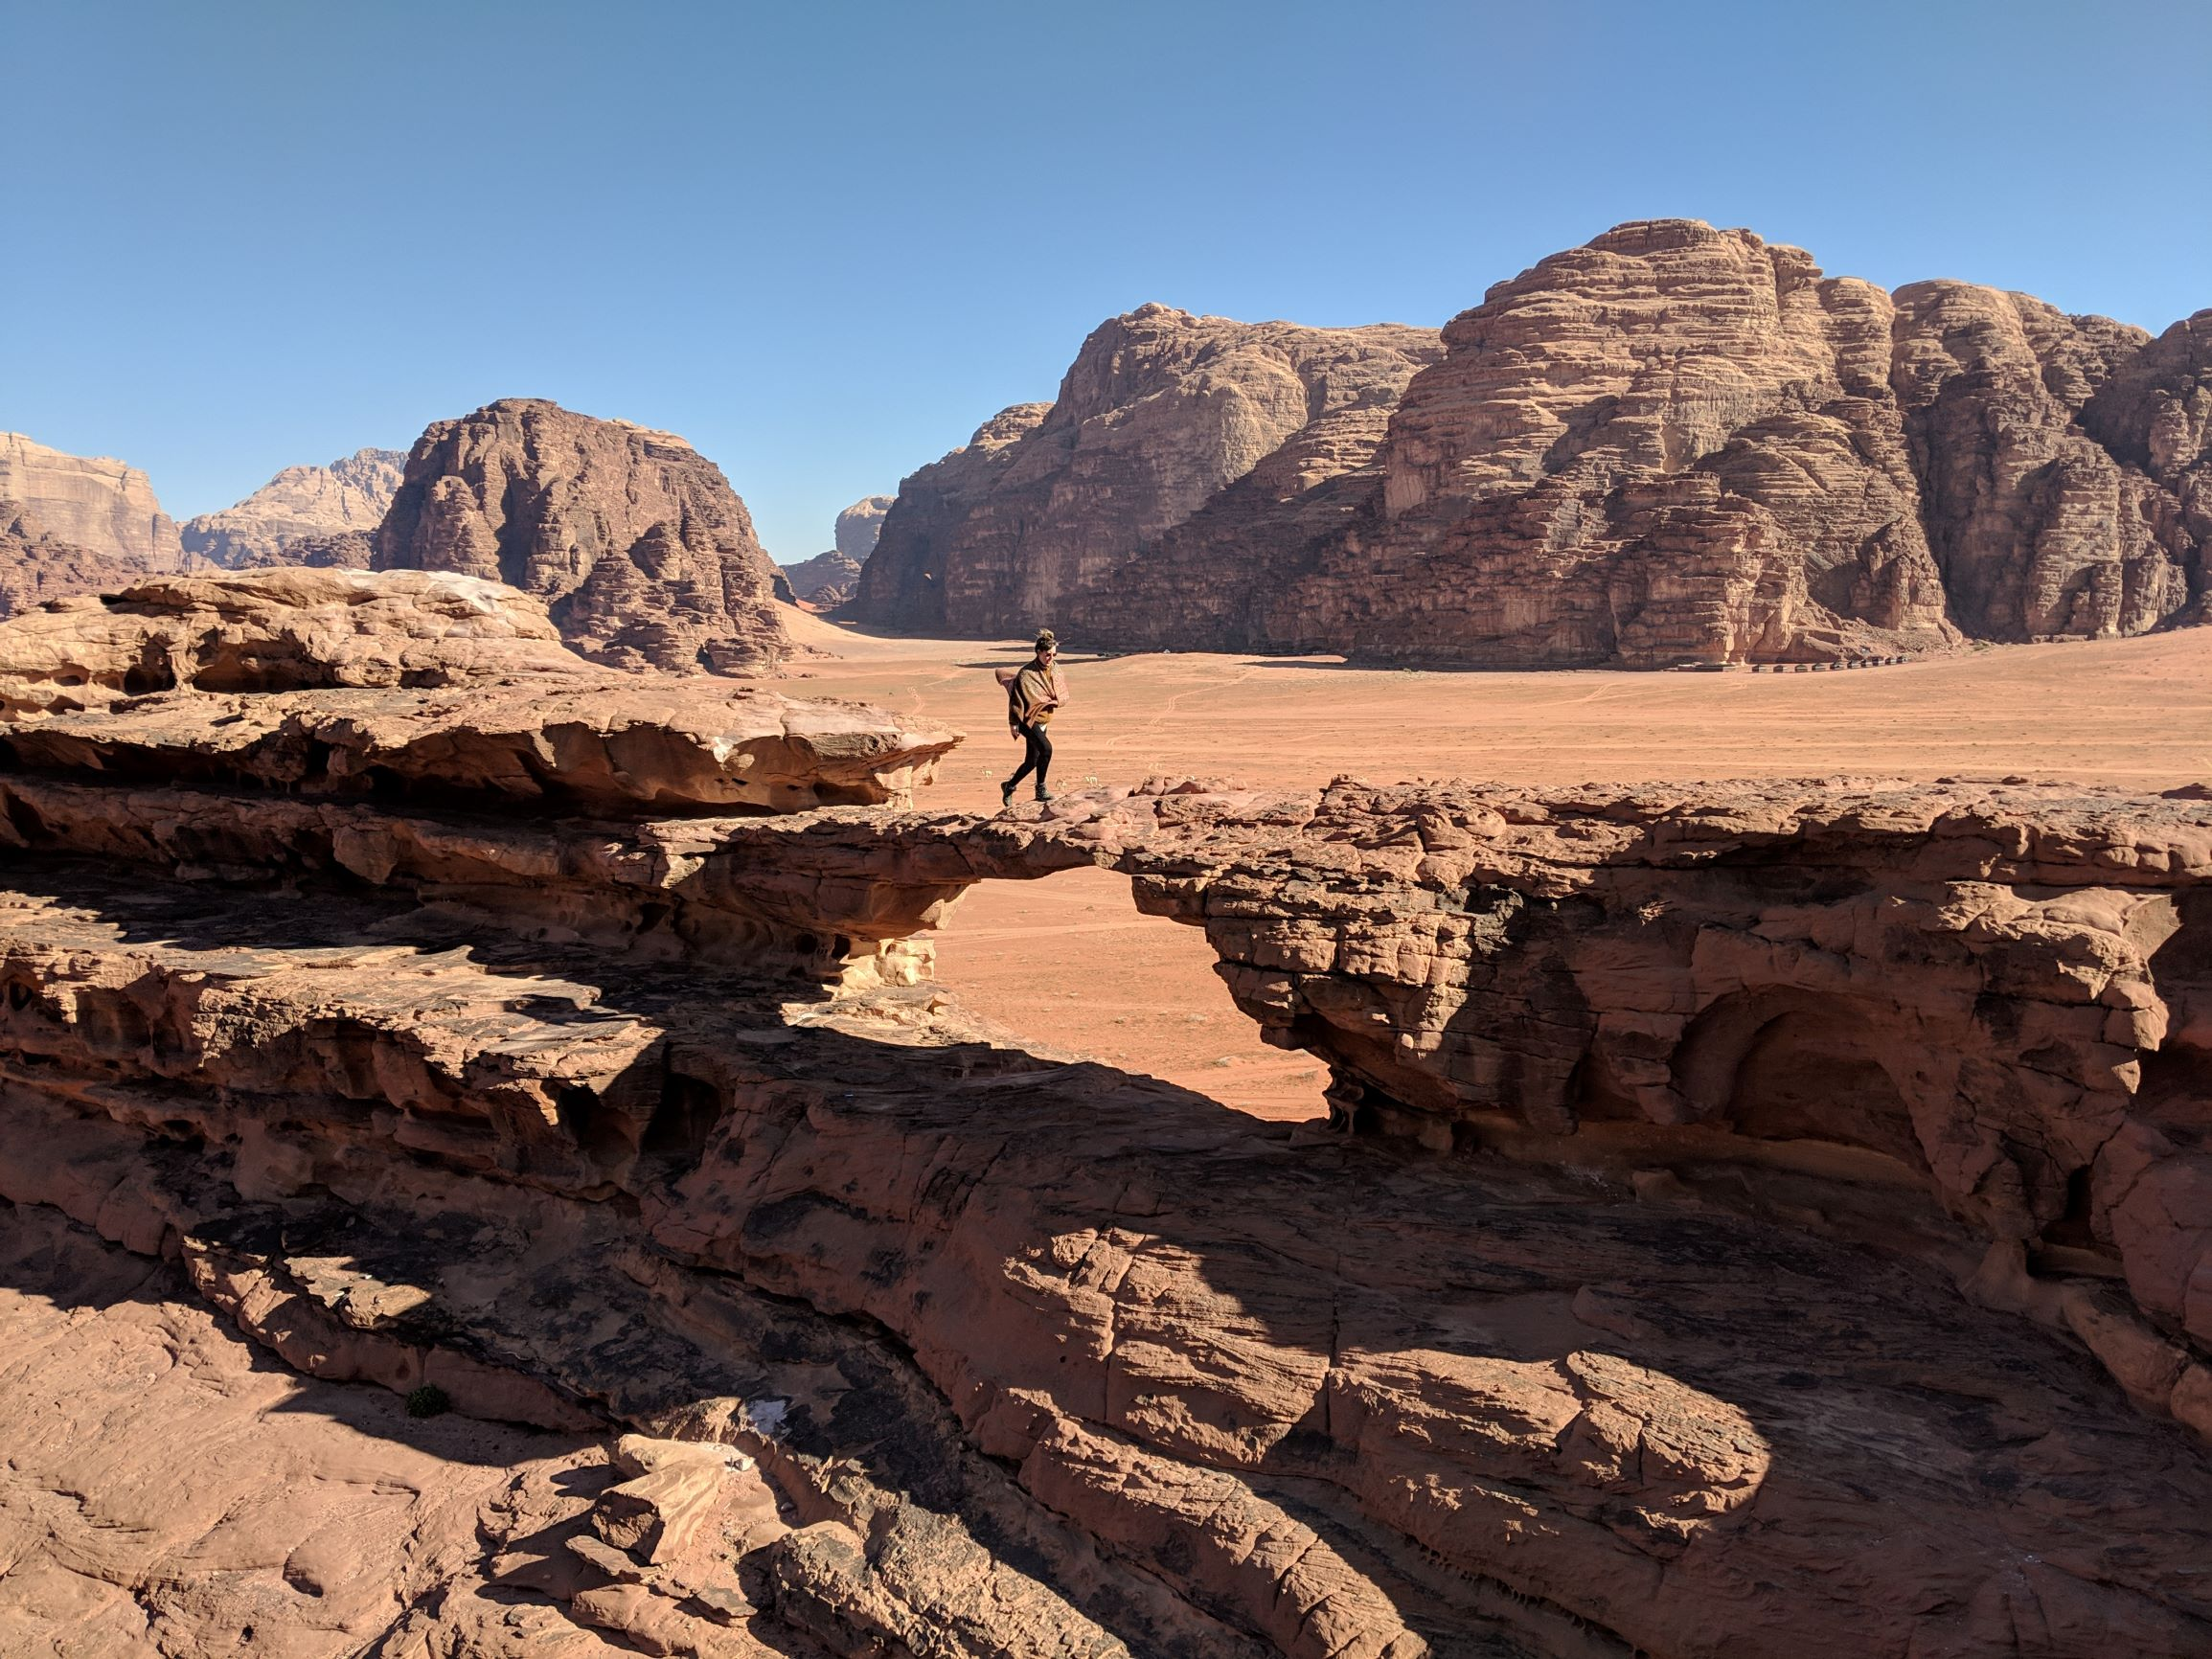 Exploring the Wadi Rum desert.